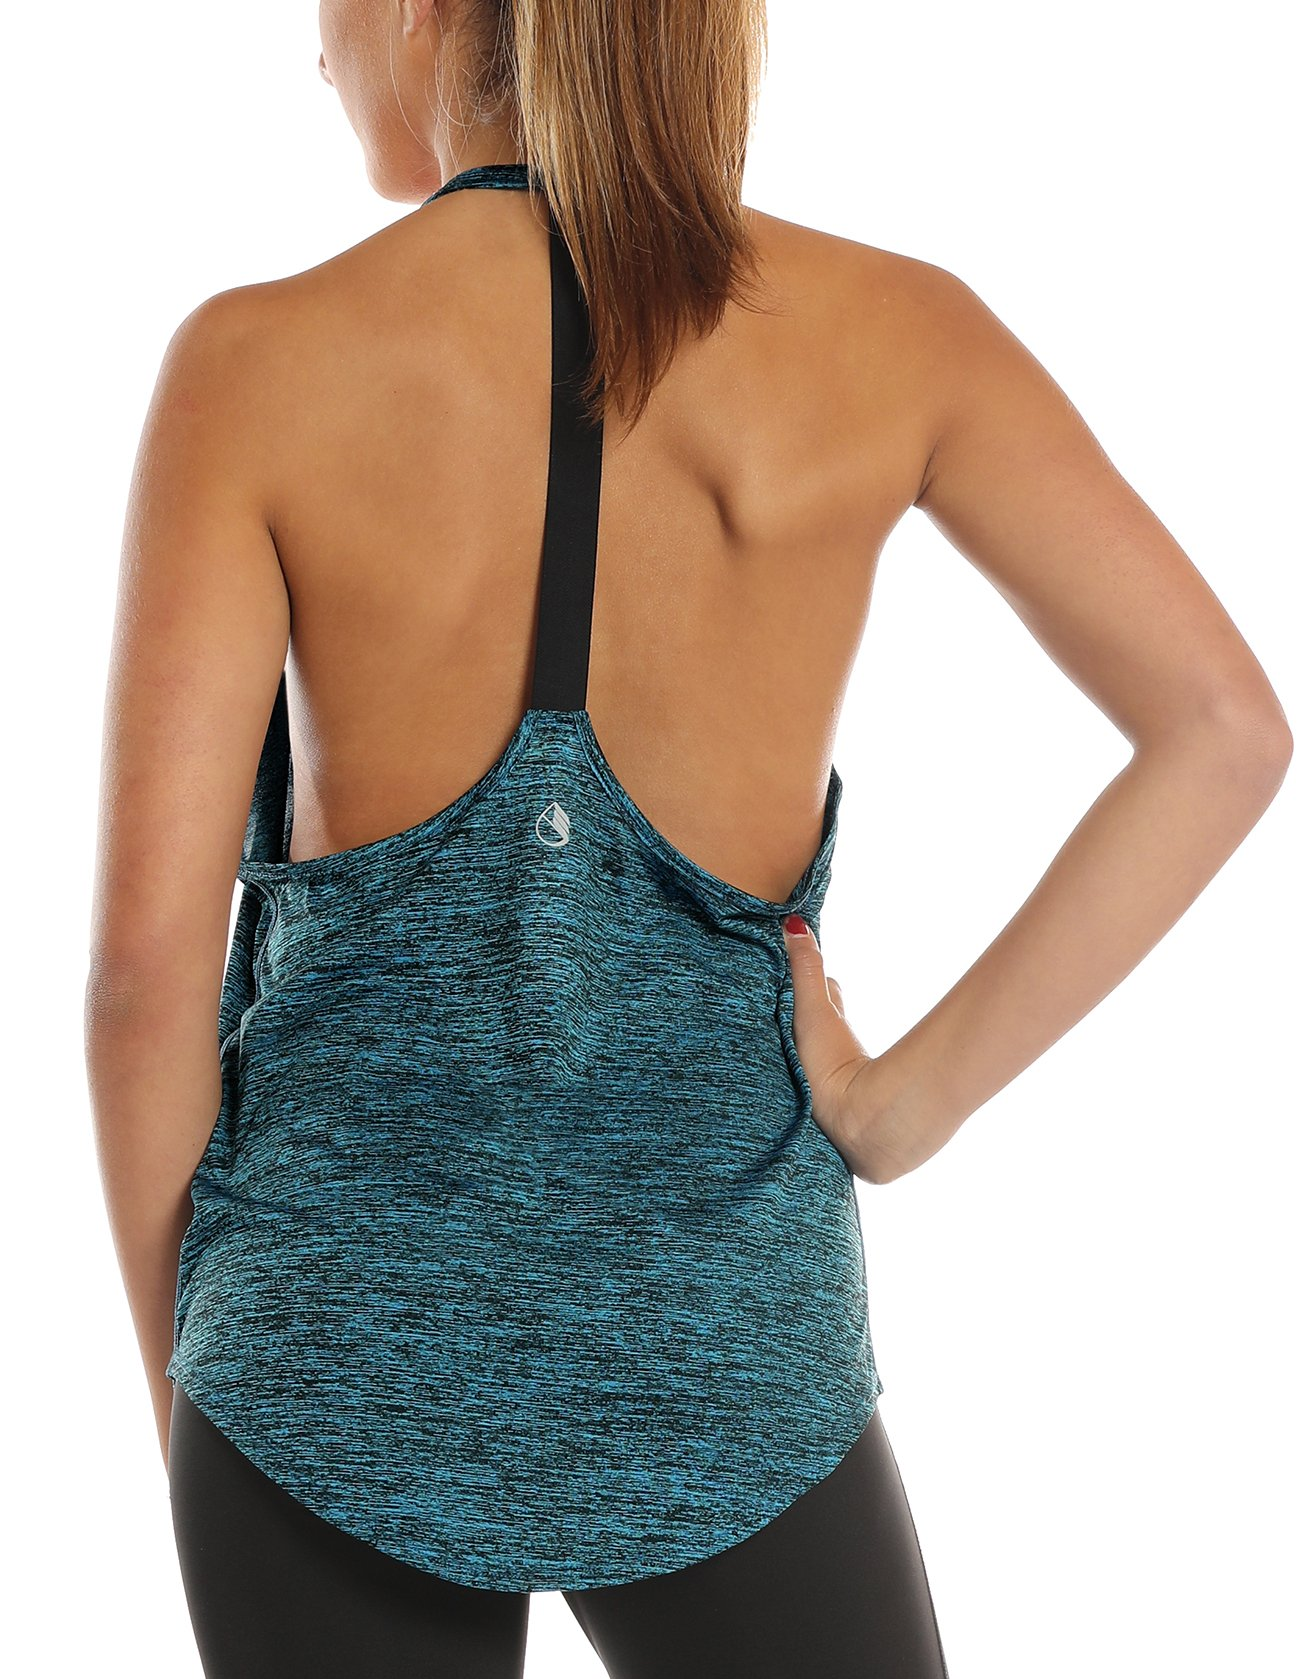 icyzone Workout Tank Tops for Women - Athletic Yoga Tops, T-Back Running Tank Top (M, Royal Blue)